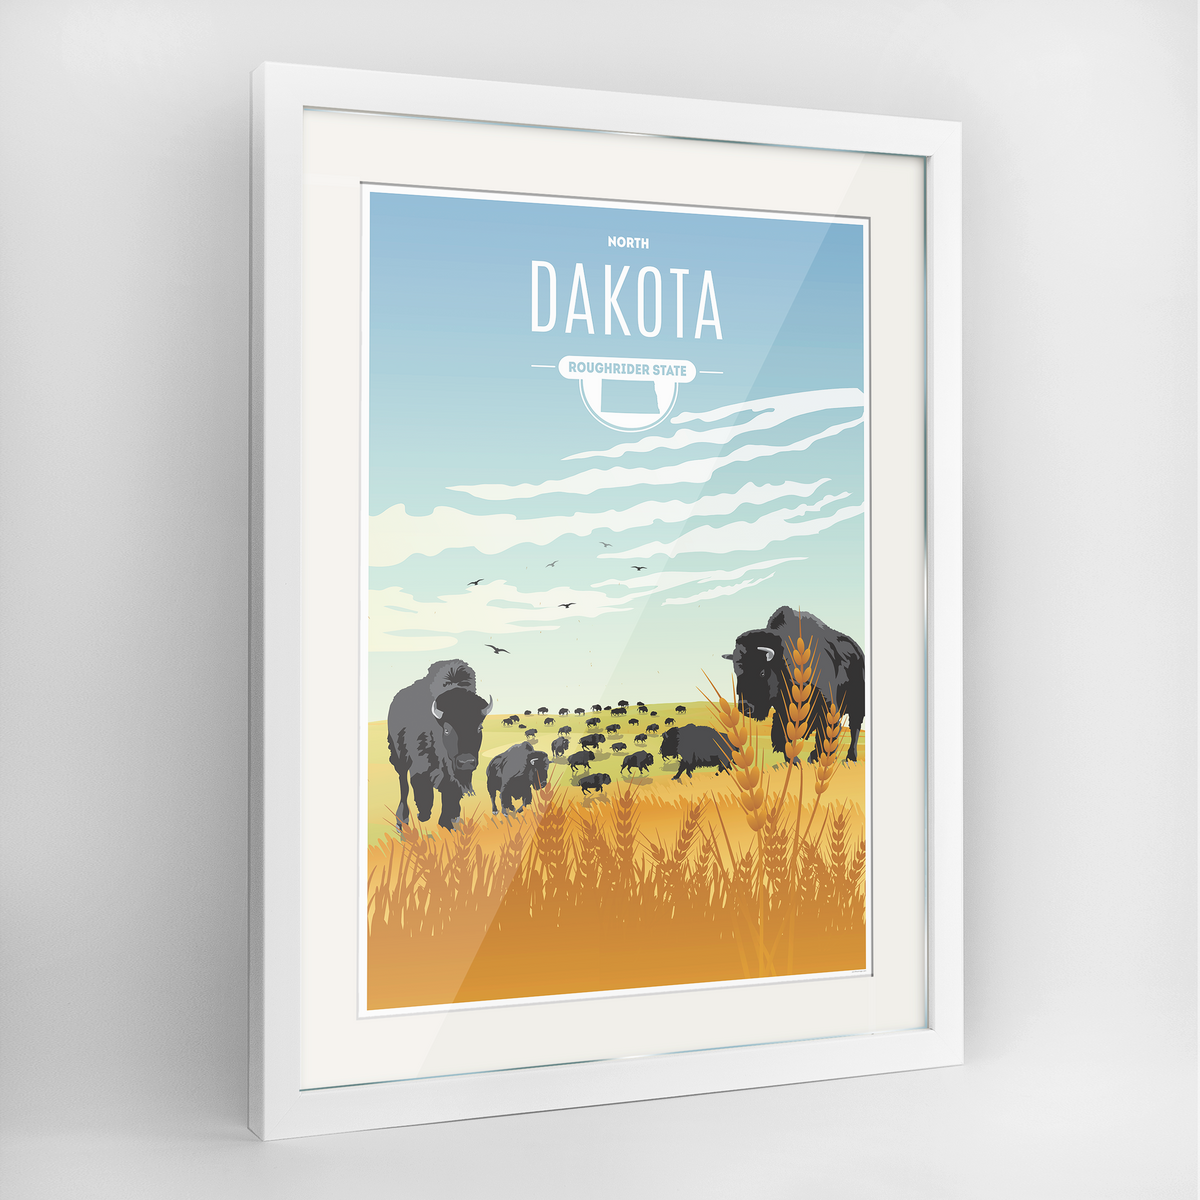 North Dakota State Frame Print